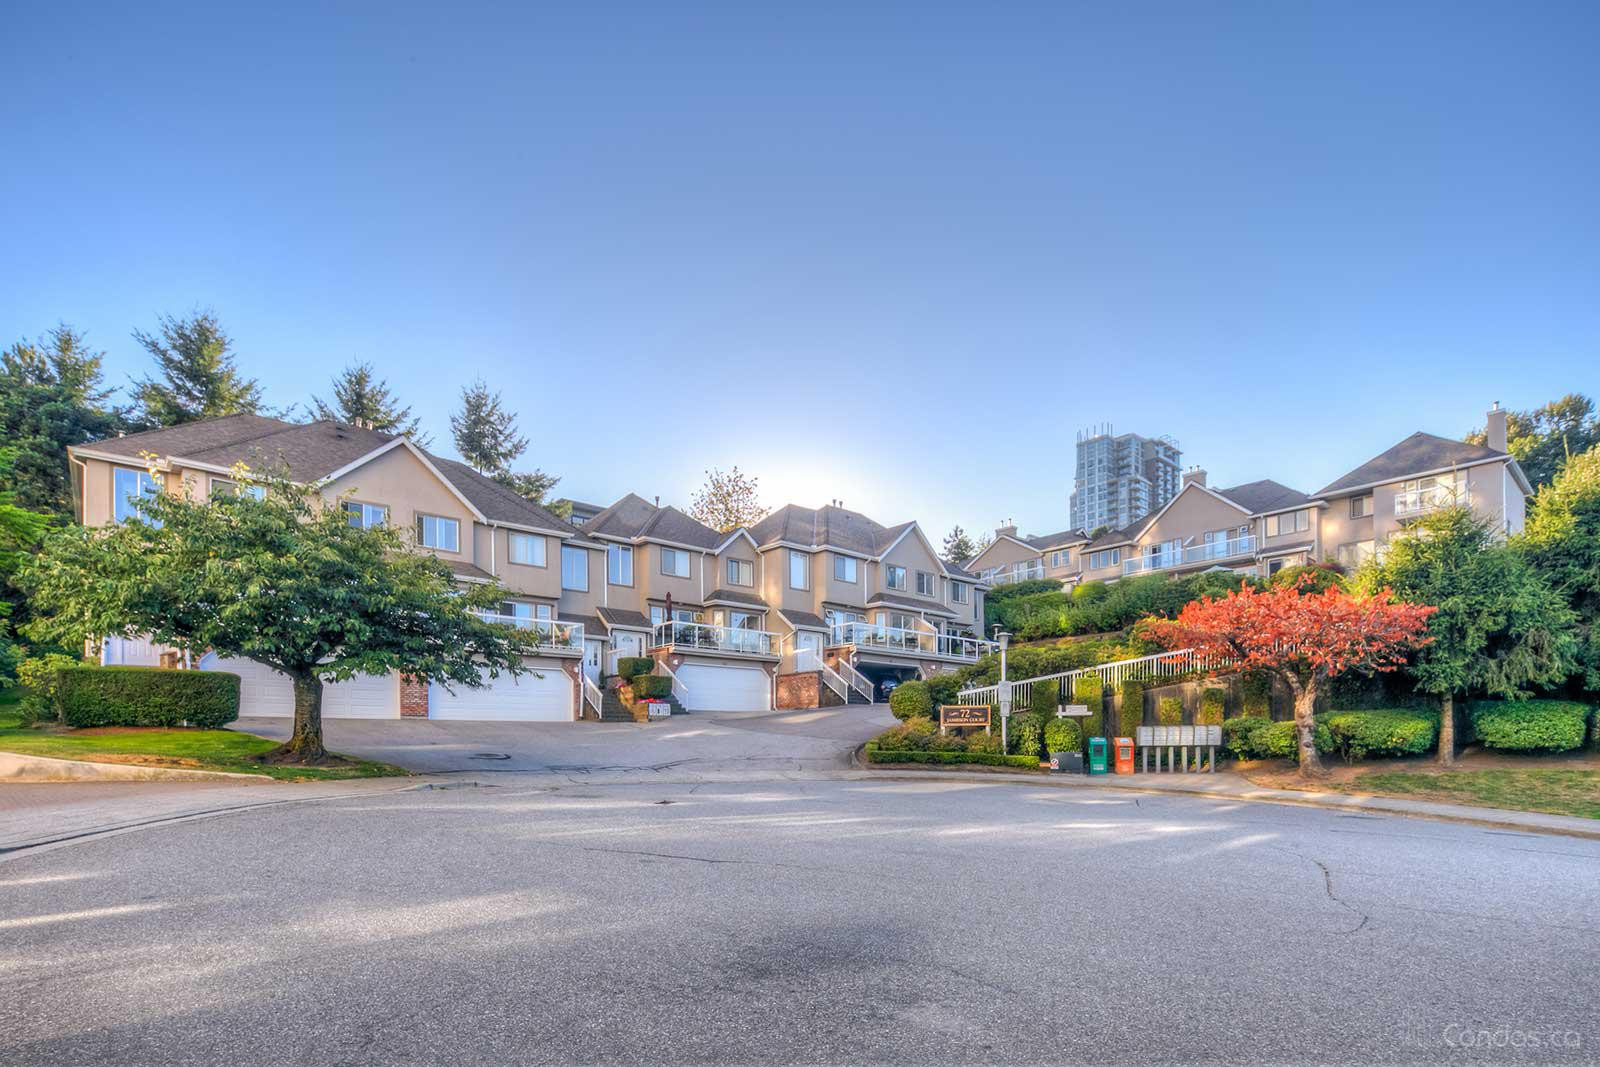 Jamieson Court at 72 Jamieson Crt, New Westminster 0